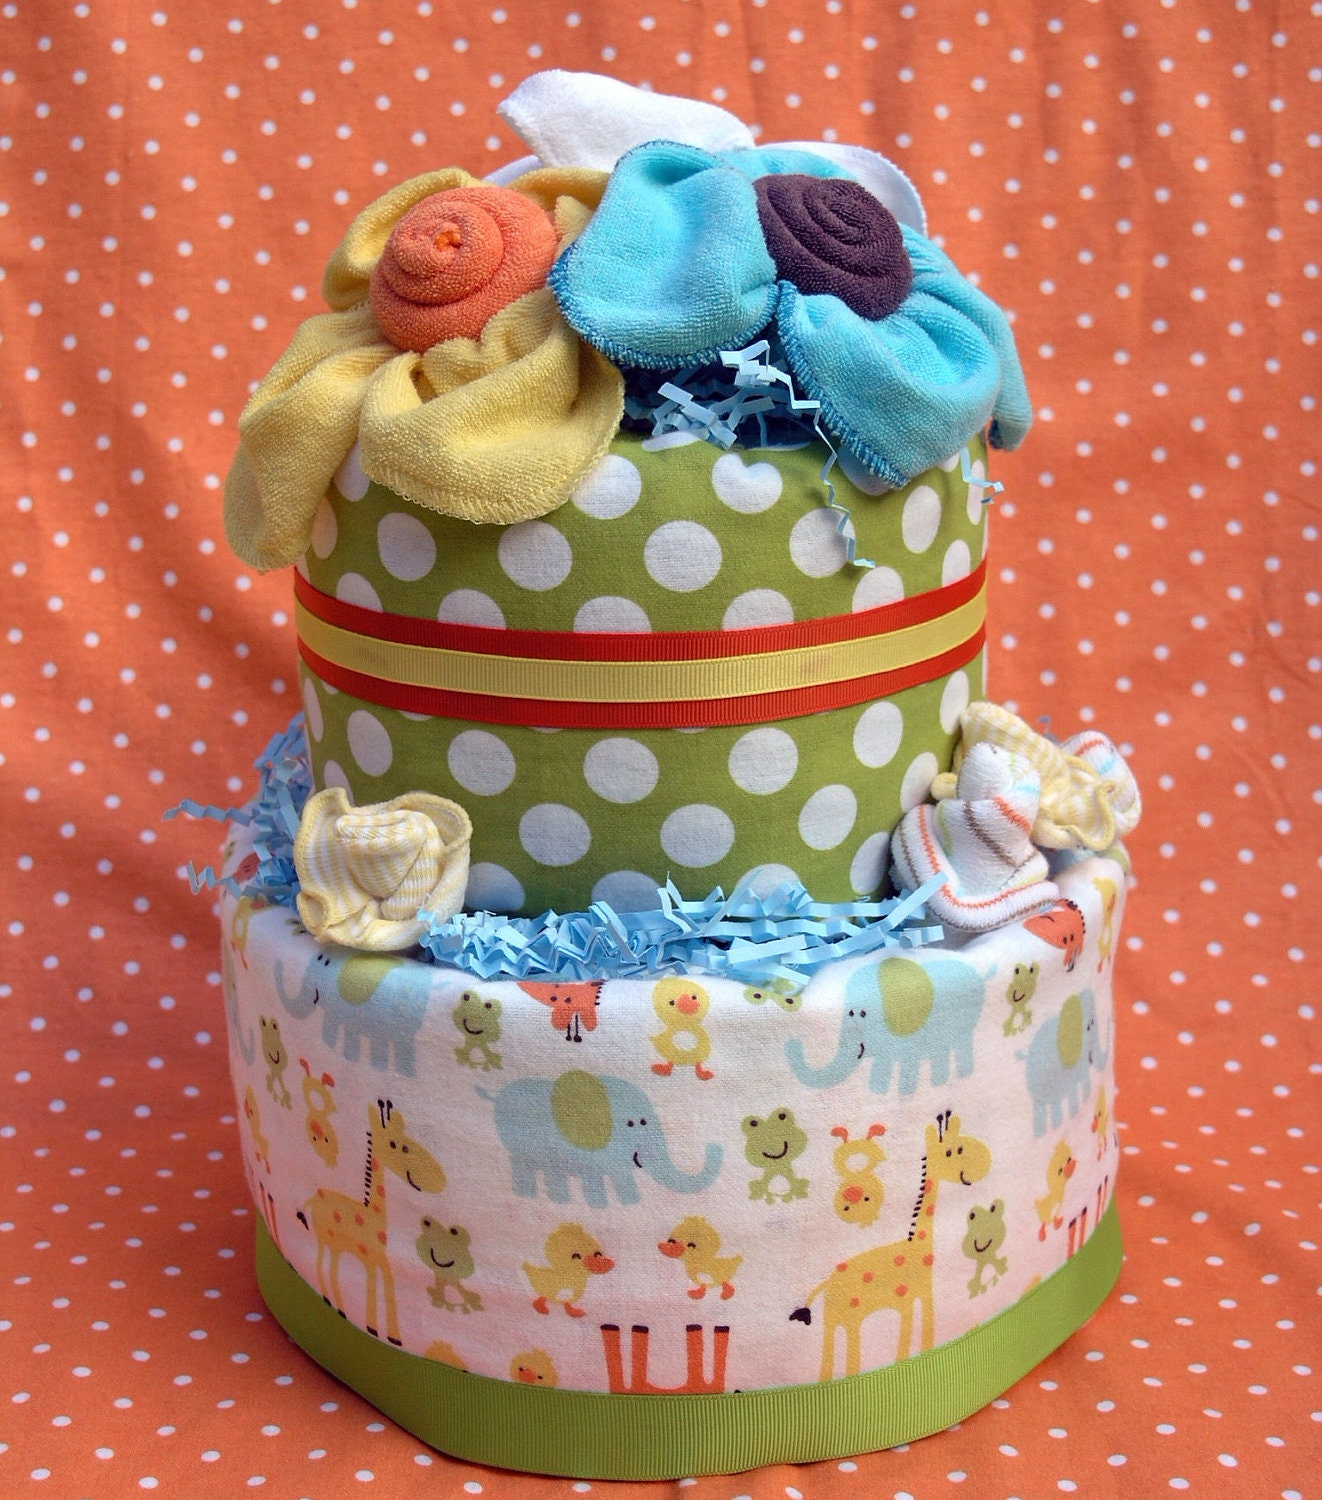 Baby Shower Decorated Cakes: Baby Diaper Decorations